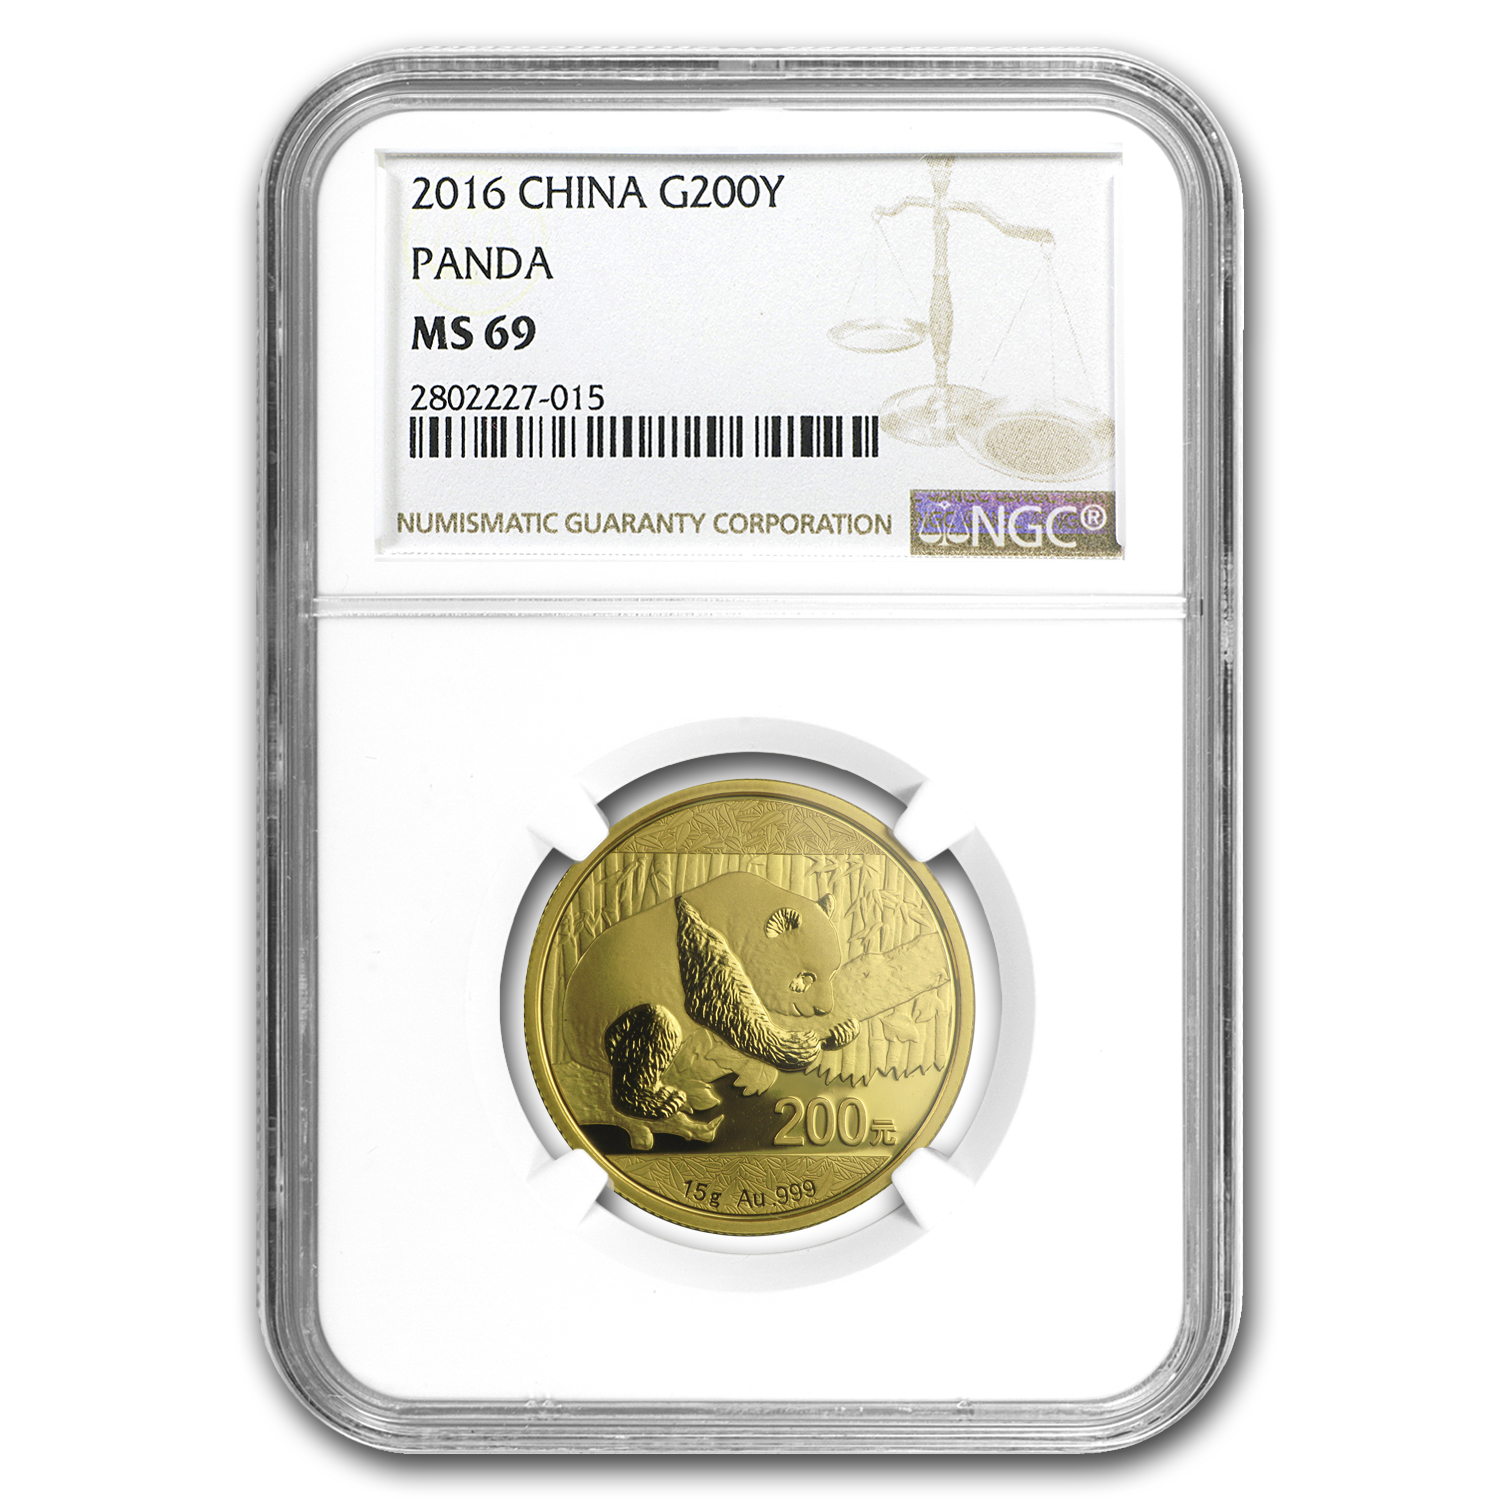 2016 China 15 Gram Gold Panda MS-69 NGC